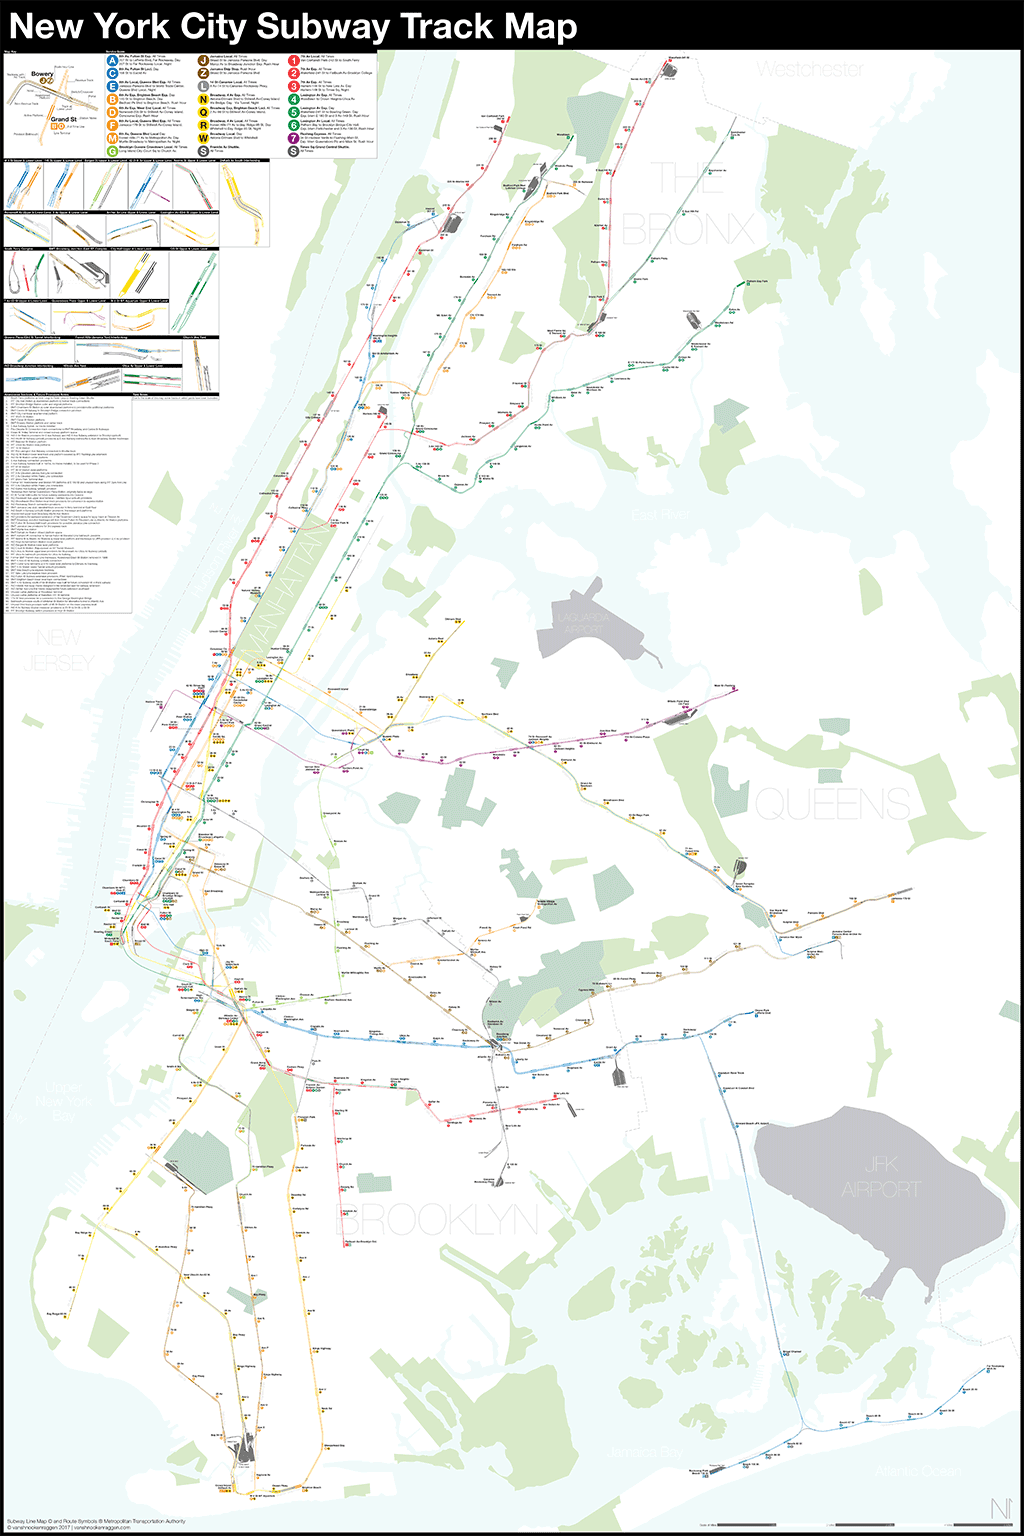 New York City Navigating Subway Map.A Complete And Geographically Accurate Nyc Subway Track Map